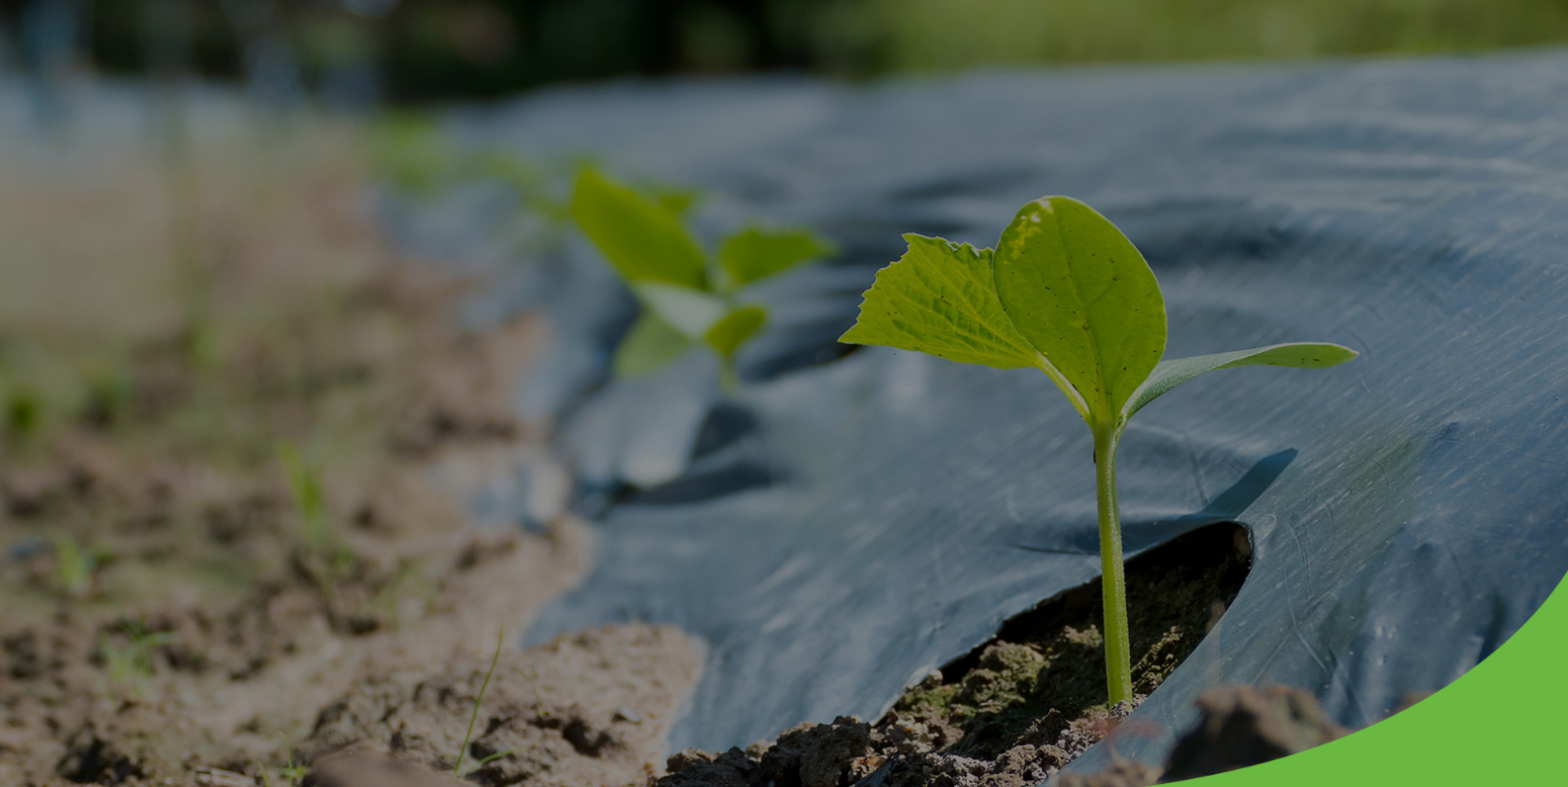 Is Agricultural Mulch Film Advantageous For The Fertility Of Soil?